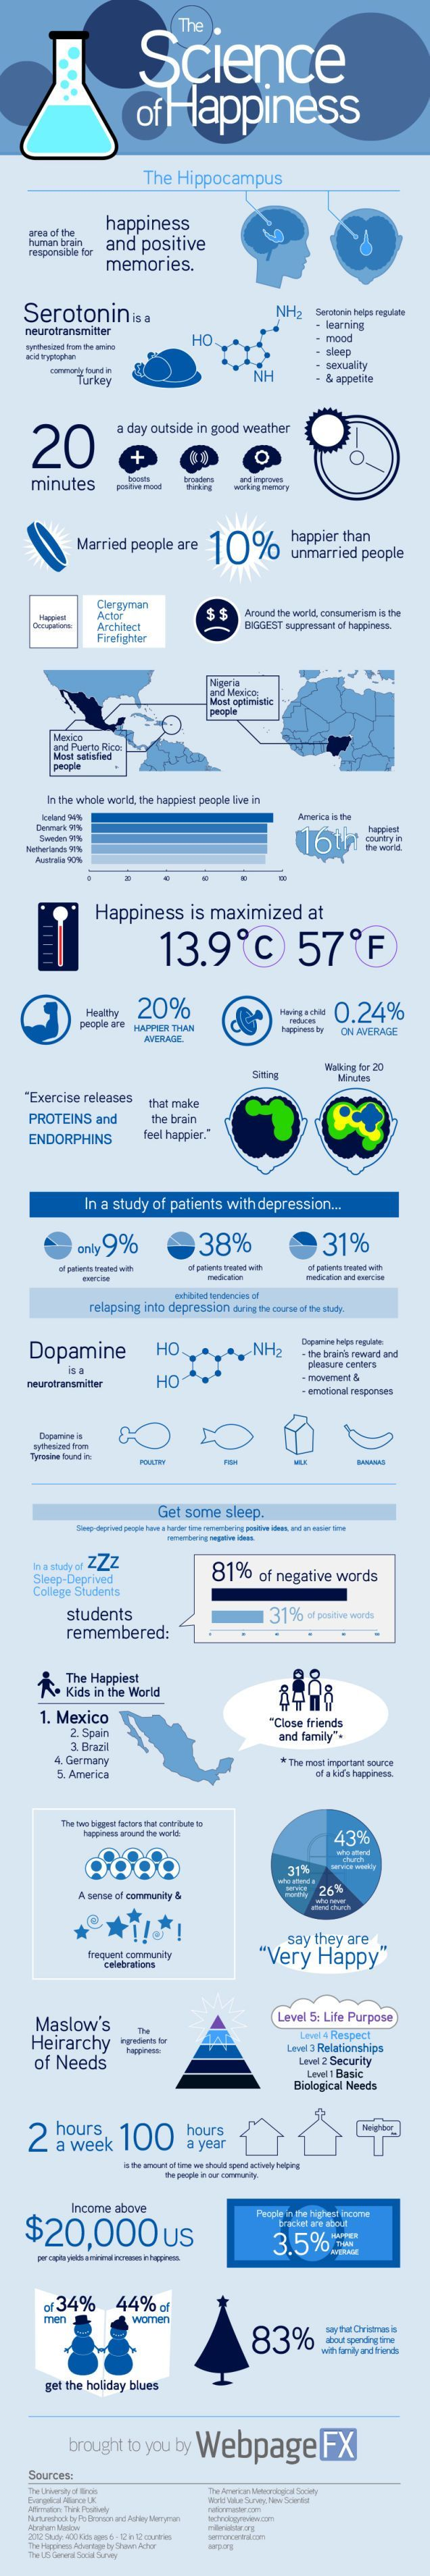 This infographic details some interesting research on happiness. Follow this link for a collection of TED Talks on finding happiness through science, mindfulness,  productivity, and vulnerability